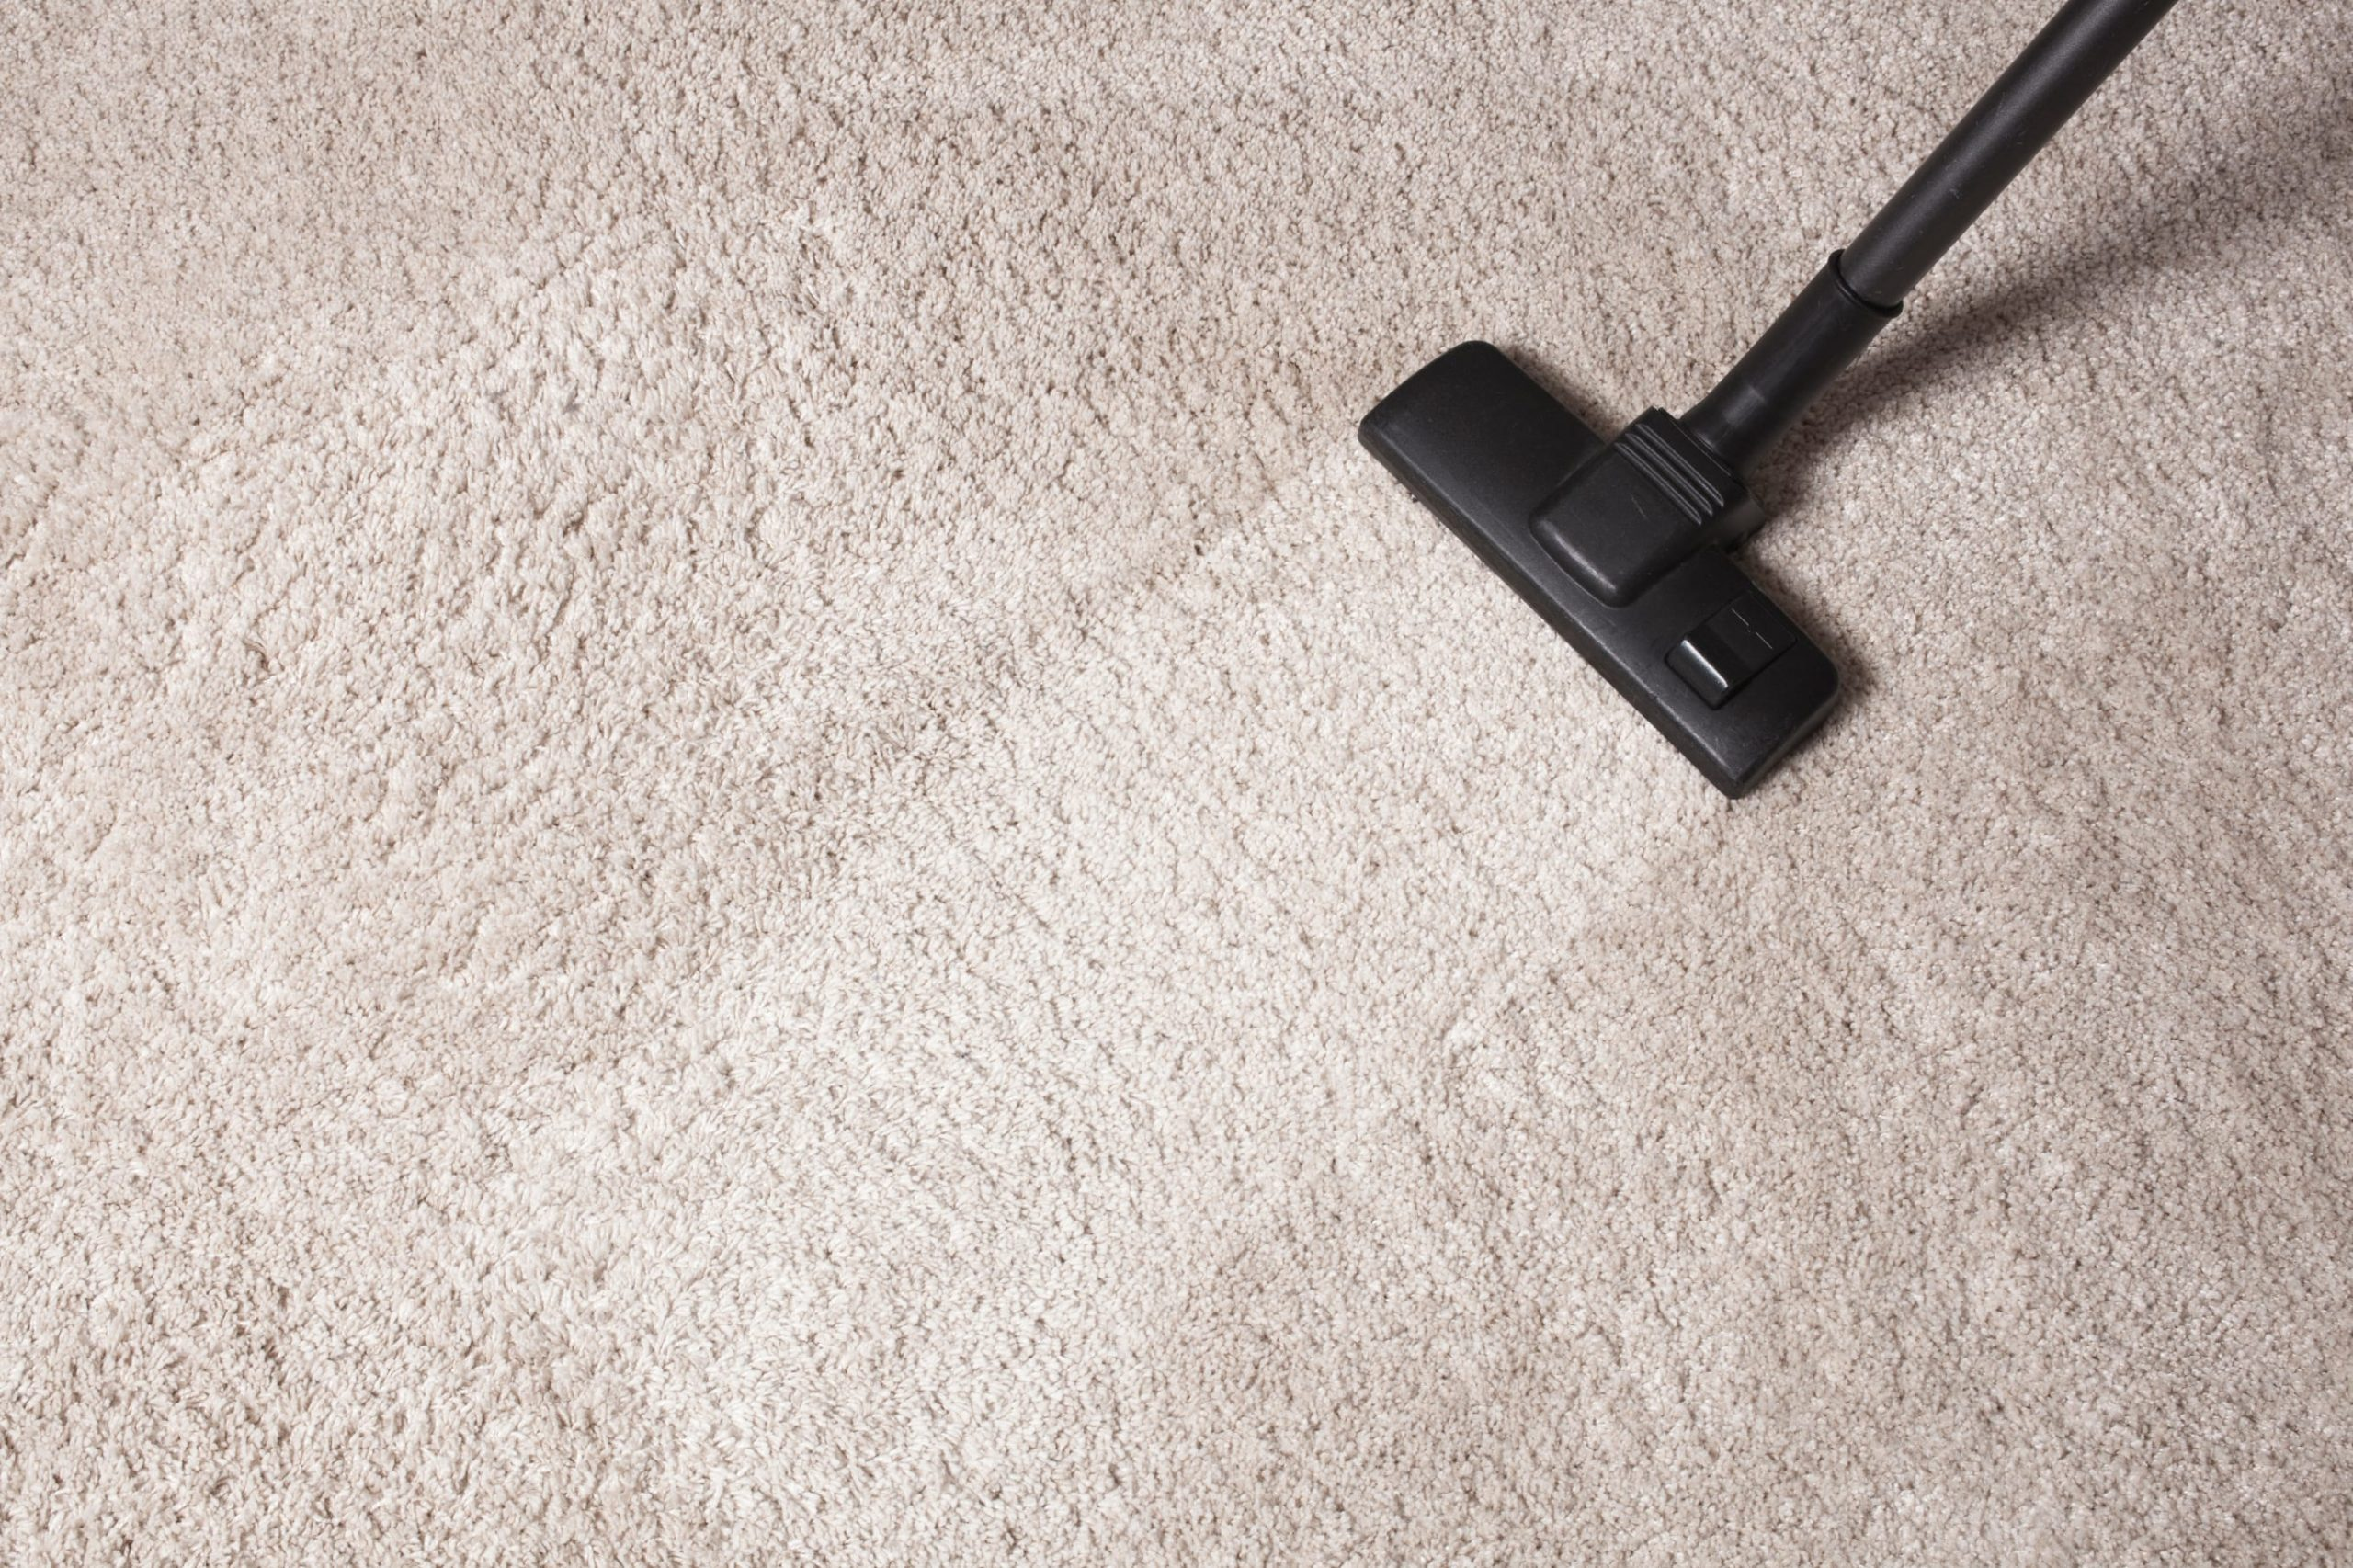 Professional Carpet Cleaning Walkerville